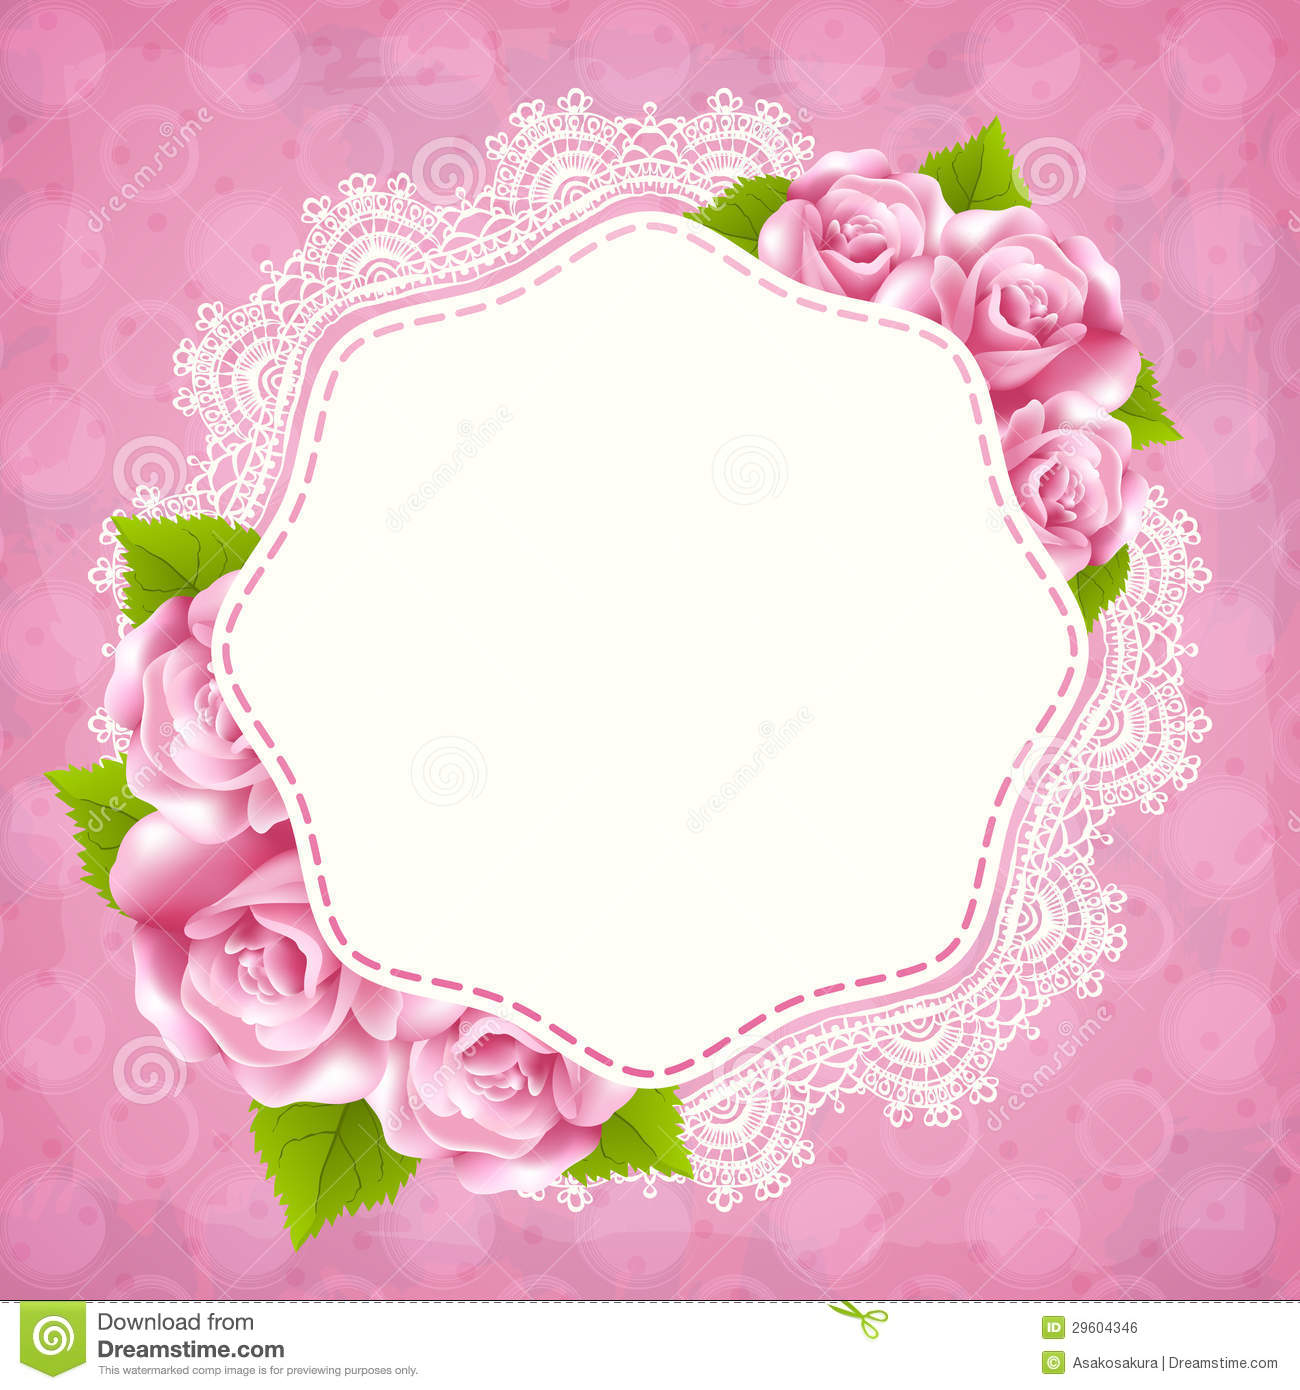 Template Greeting Card Royalty Free Stock Image: Vintage Greeting Card Template With Rose Stock Vector